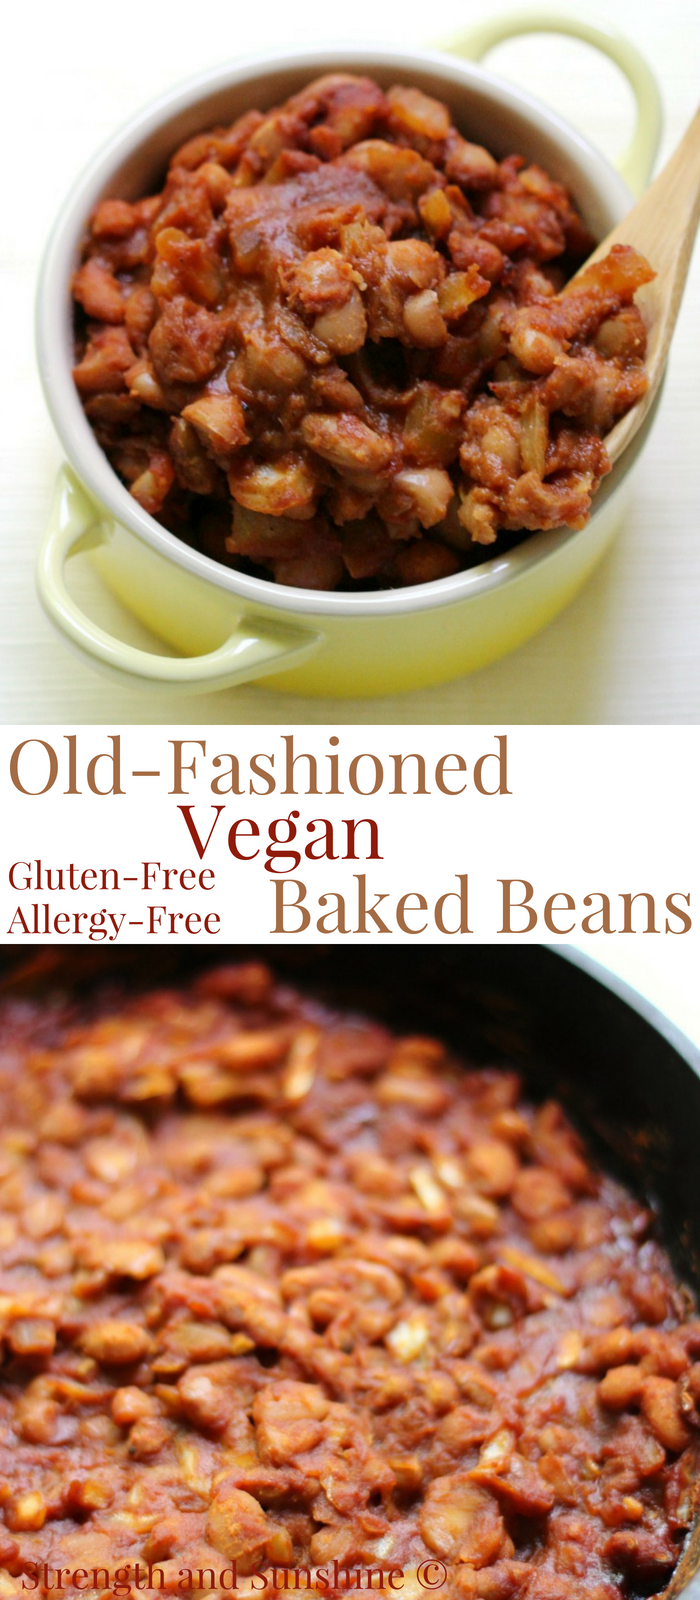 Old-Fashioned Vegan Baked Beans (Gluten-Free, Allergy-Free) | Strength and Sunshine @RebeccaGF666 Just like grandma used to make! This is the best Old-Fashioned Vegan Baked Beans recipe! They're sweet, smoky, gluten-free, top 8 allergy-free, and baked right in your cast iron skillet! #bakedbeans #vegan #glutenfree #sidedish